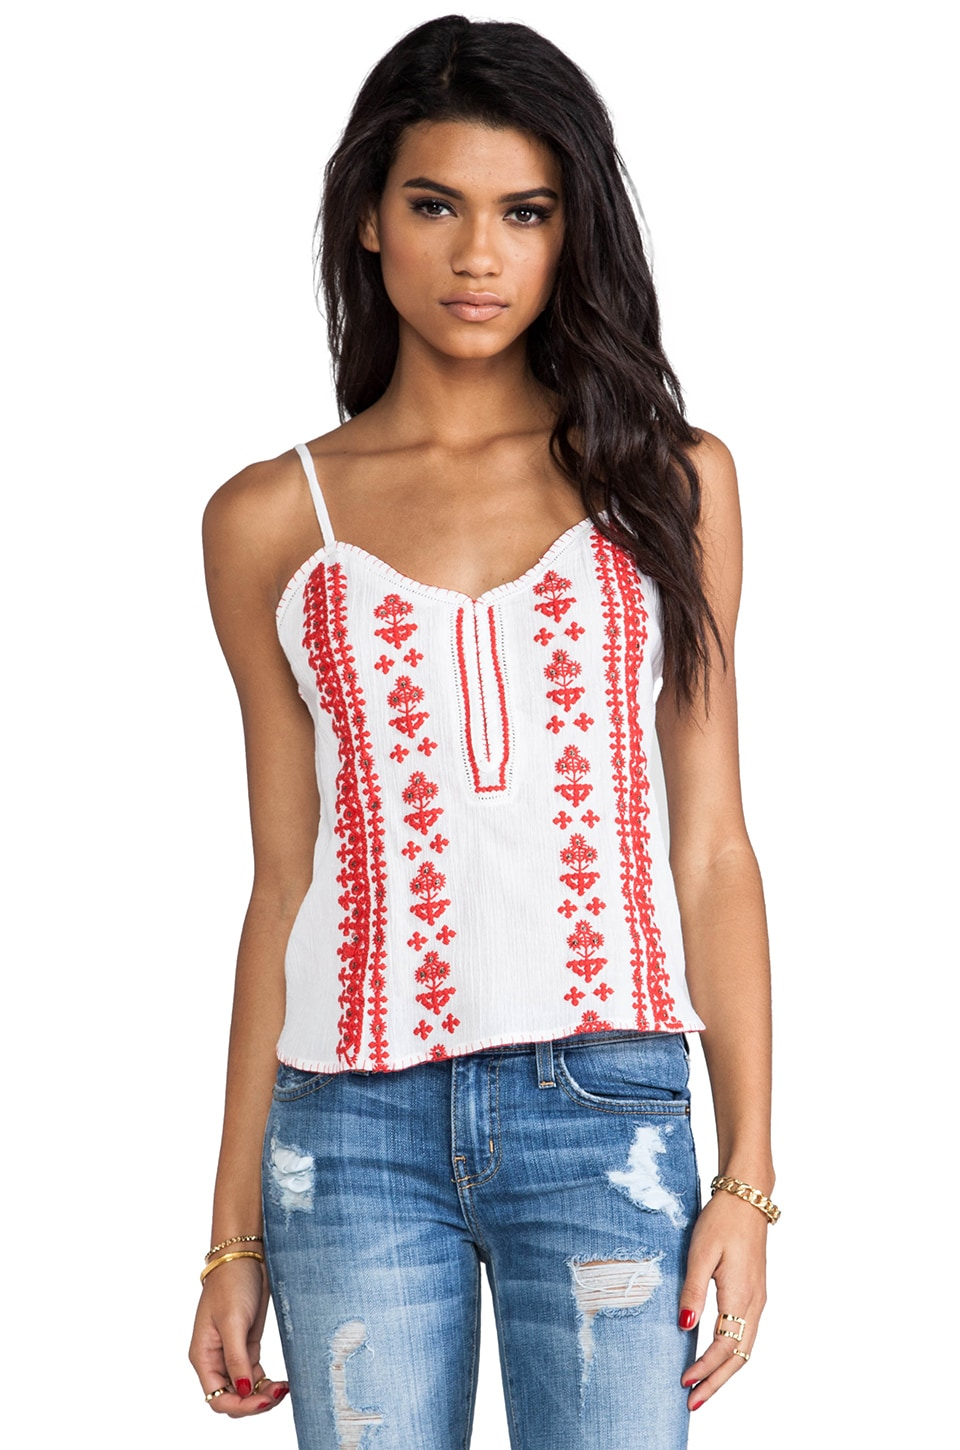 Tigerlily Shrine Cami in White